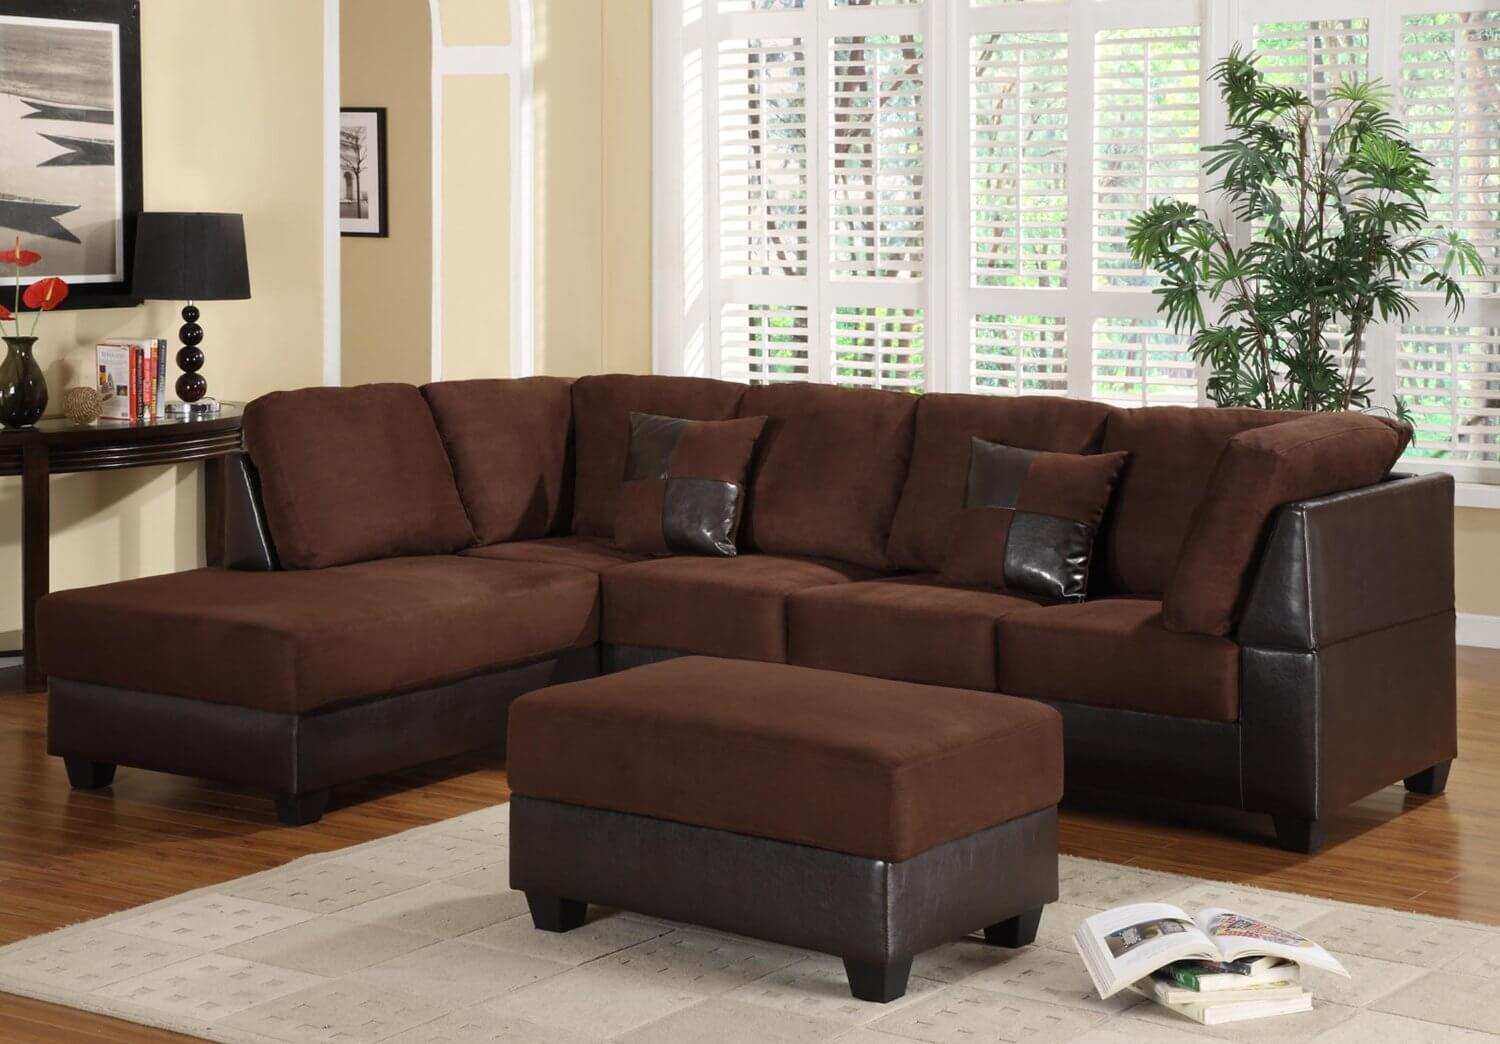 13 cheap sectional sofas under 500 for